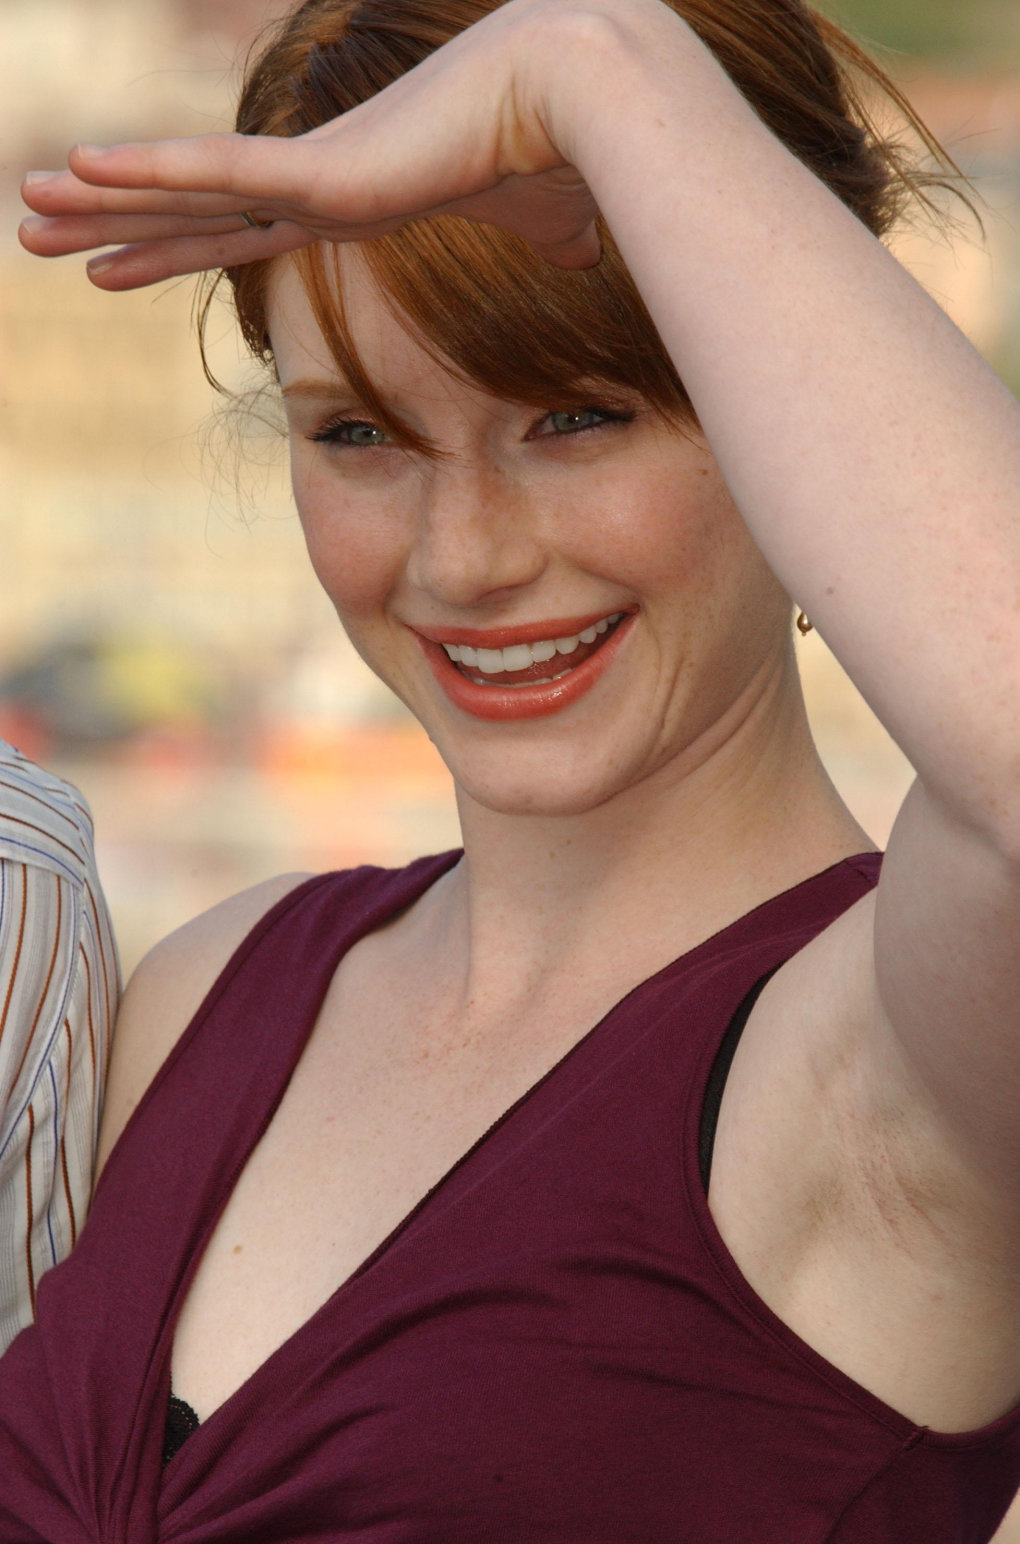 Hot Bryce Dallas Howard Photos  Nude Bryce Dallas Howard - Barnorama-6887